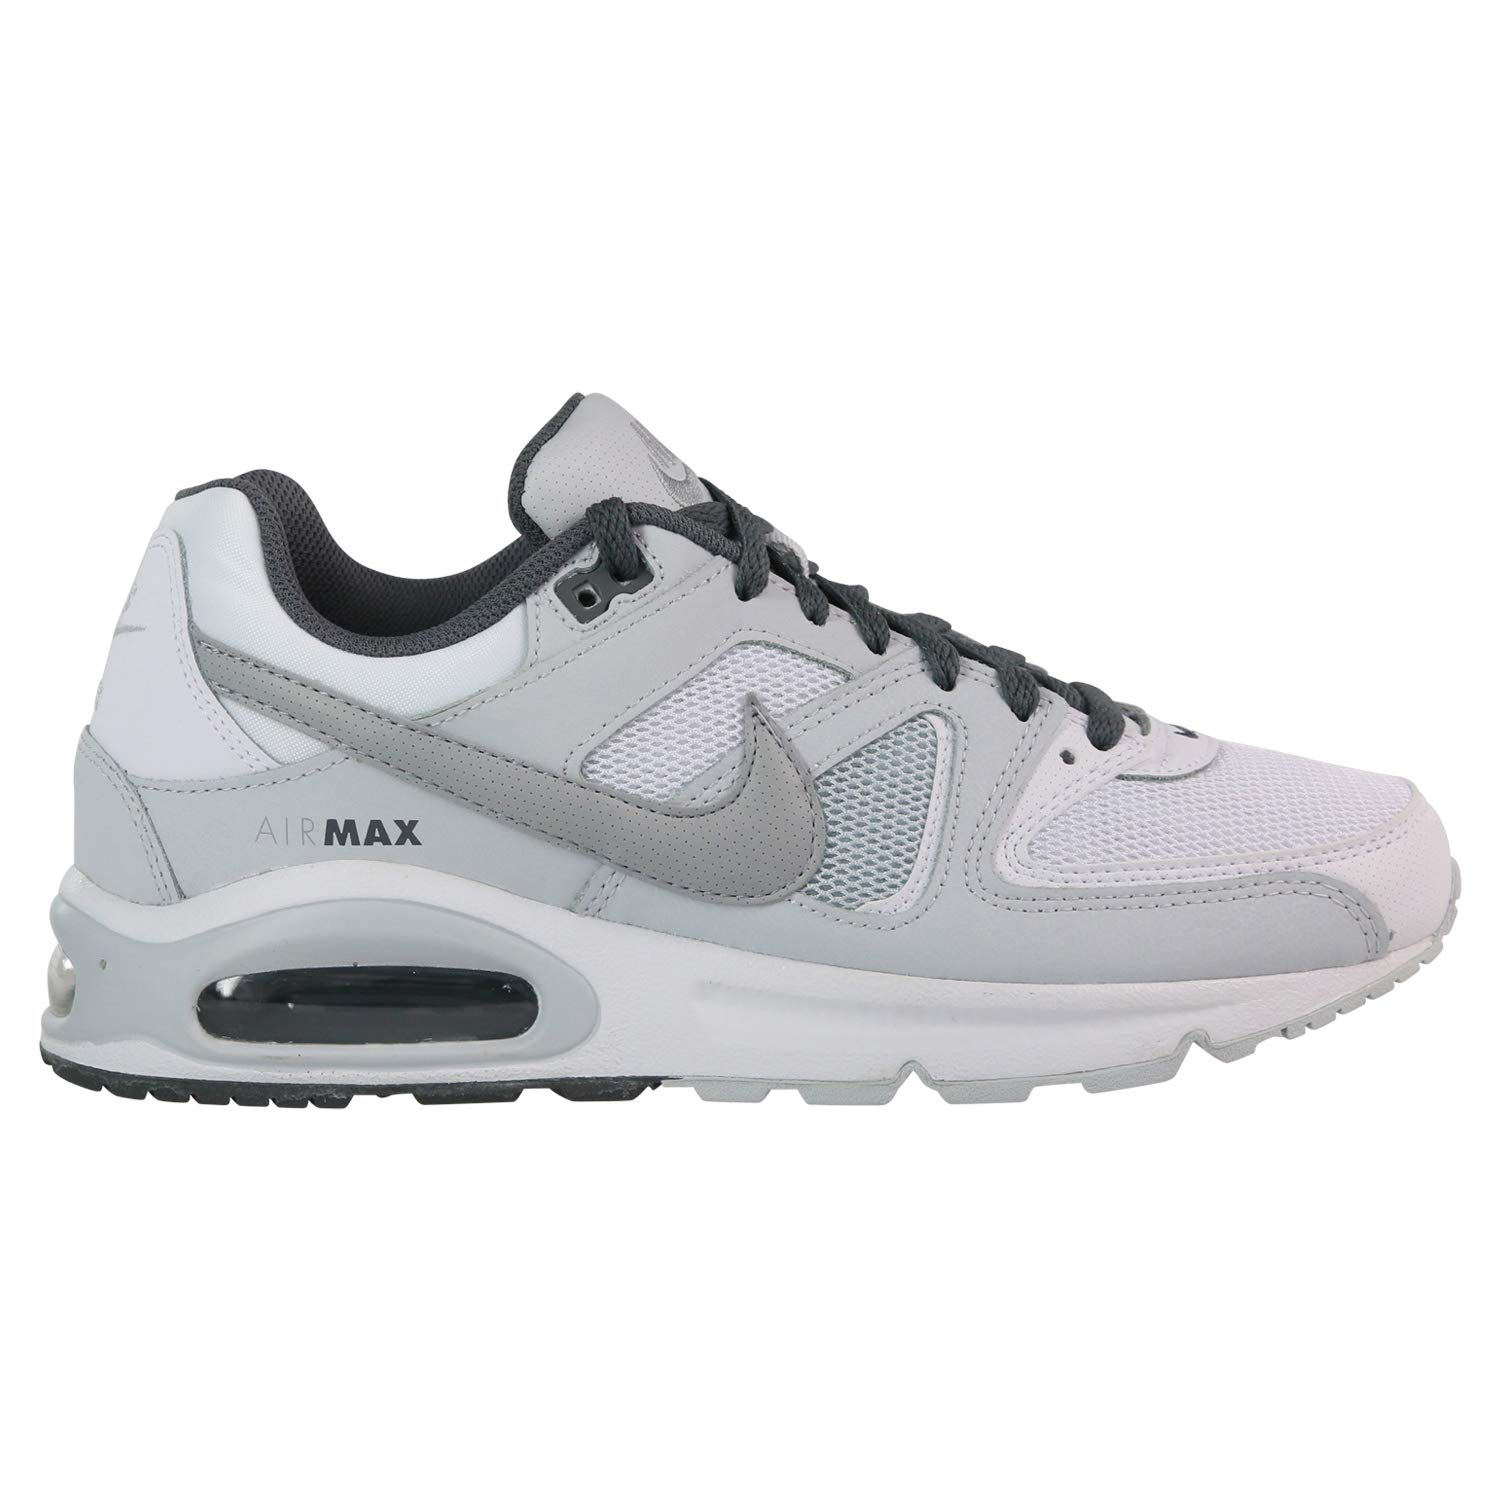 reputable site 021cd 89d0f Nike Herren Air Max Command Sneaker Weiß product image